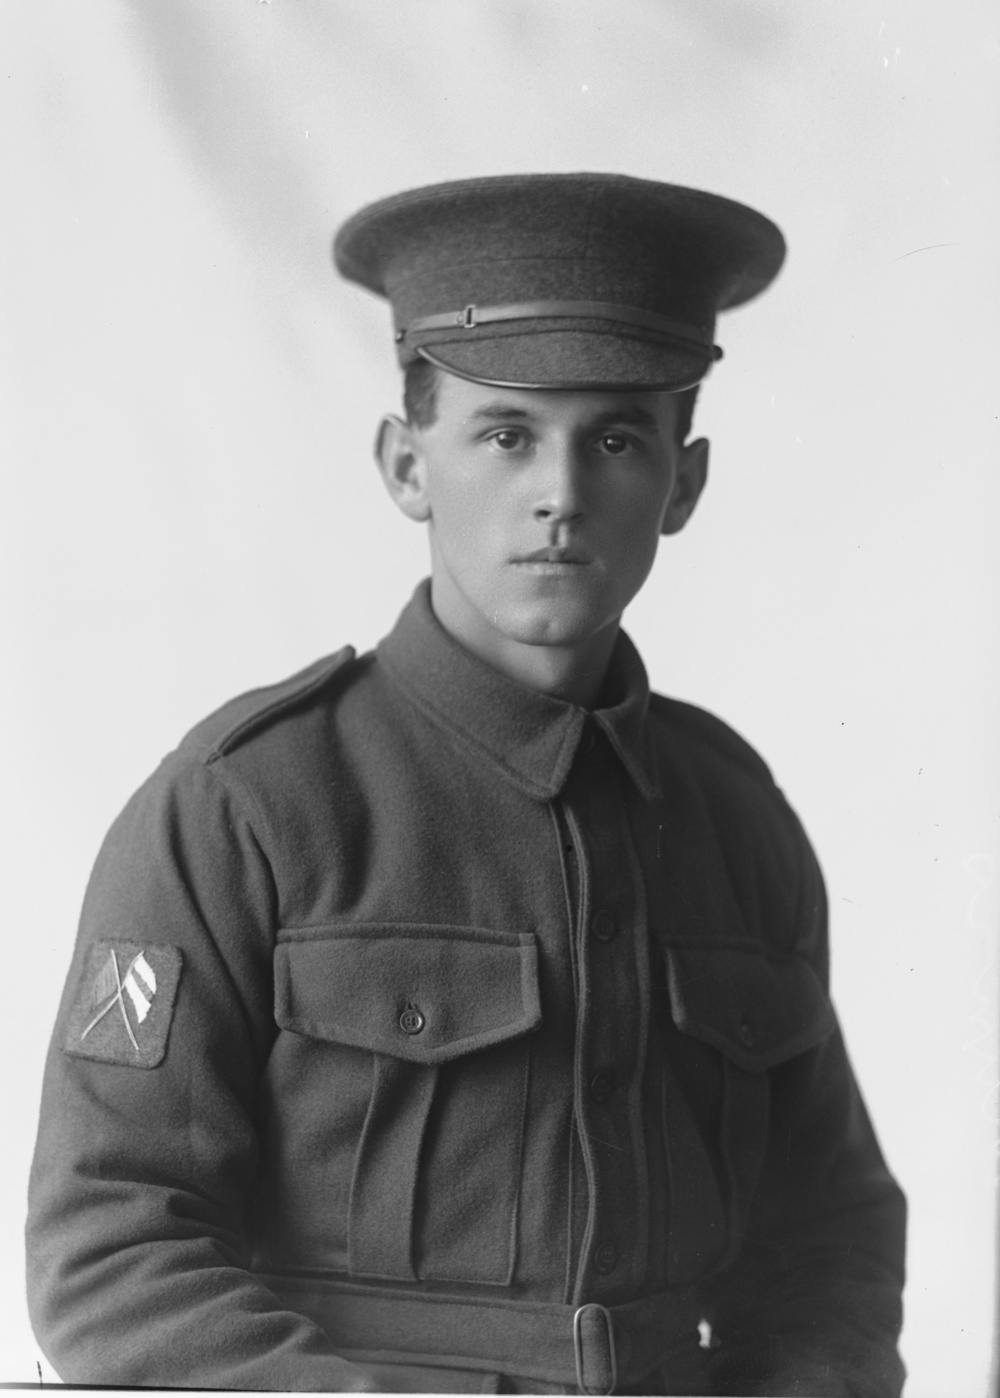 Photographed at the Dease Studio, 117 Barrack Street Perth WA Image courtesy of the State Library of Western Australia:108133PD